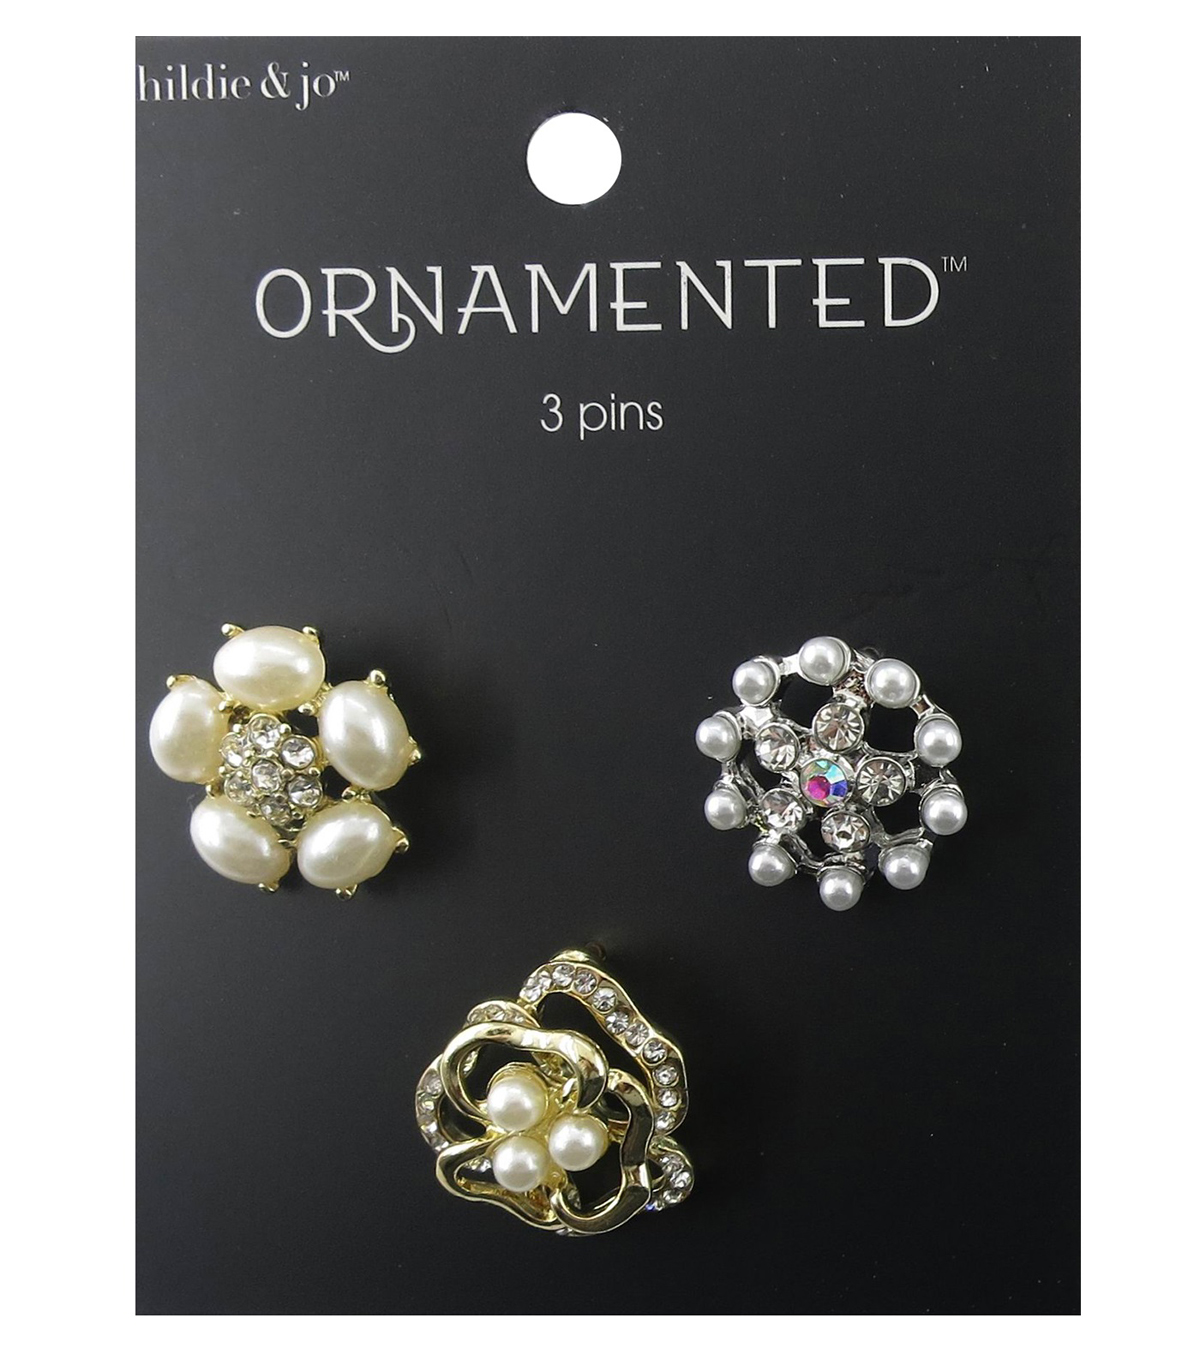 hildie & jo Ornamented 3 Pack Flowers Silver & Gold Pins